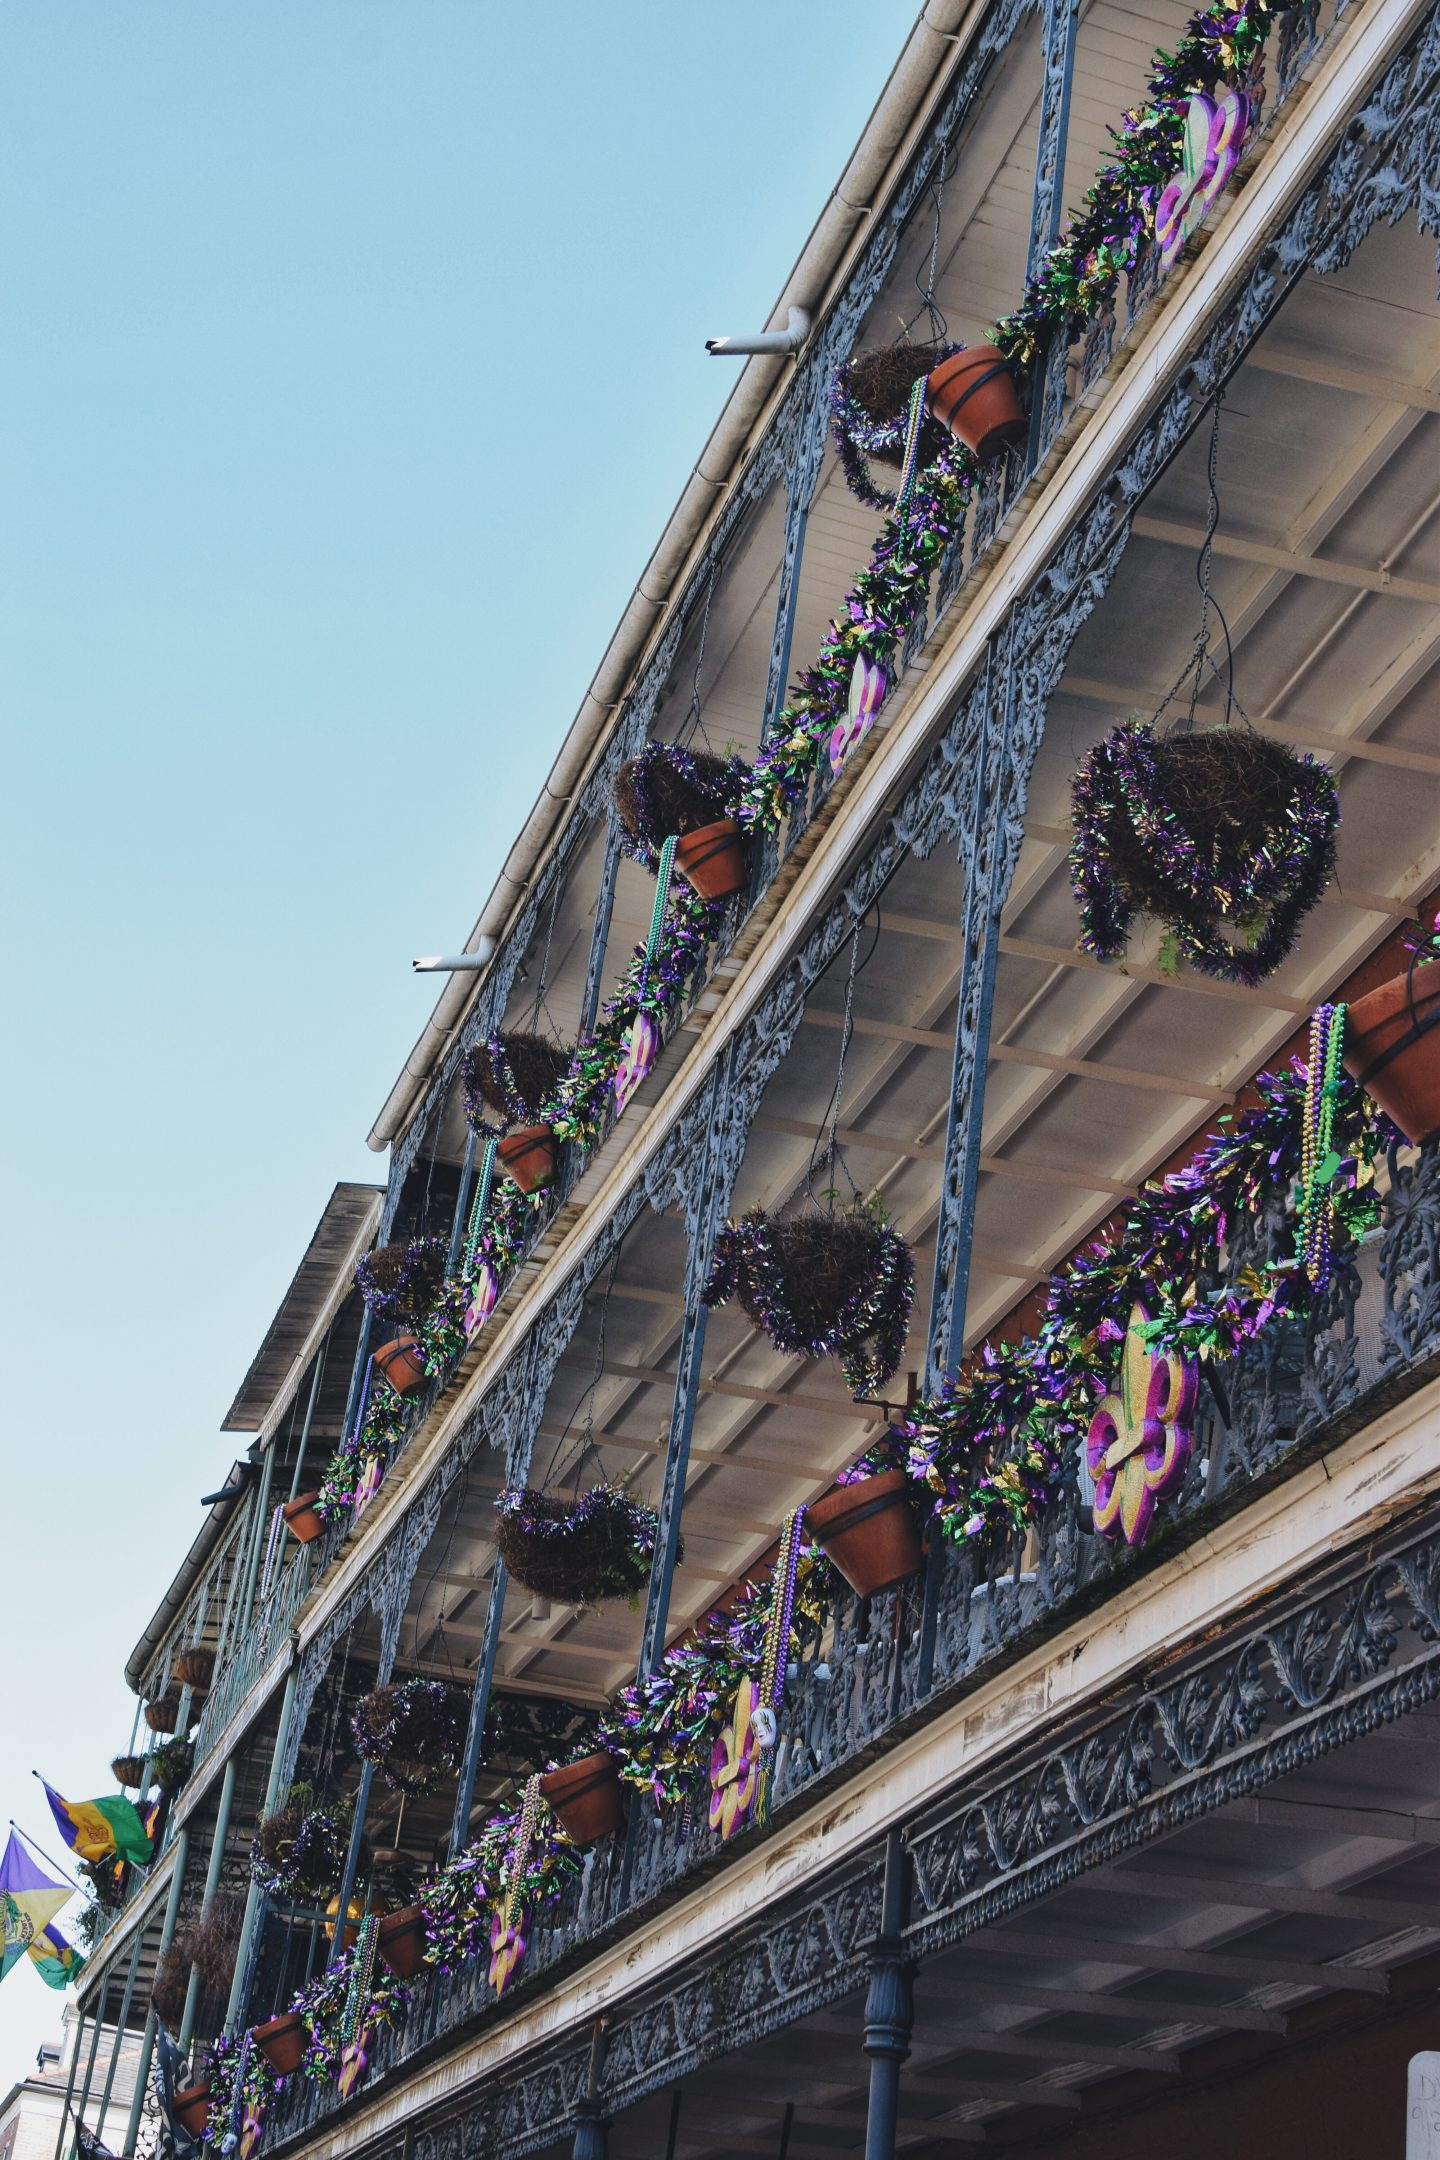 NEW ORLEANS: My Top 3 Travel Highlights